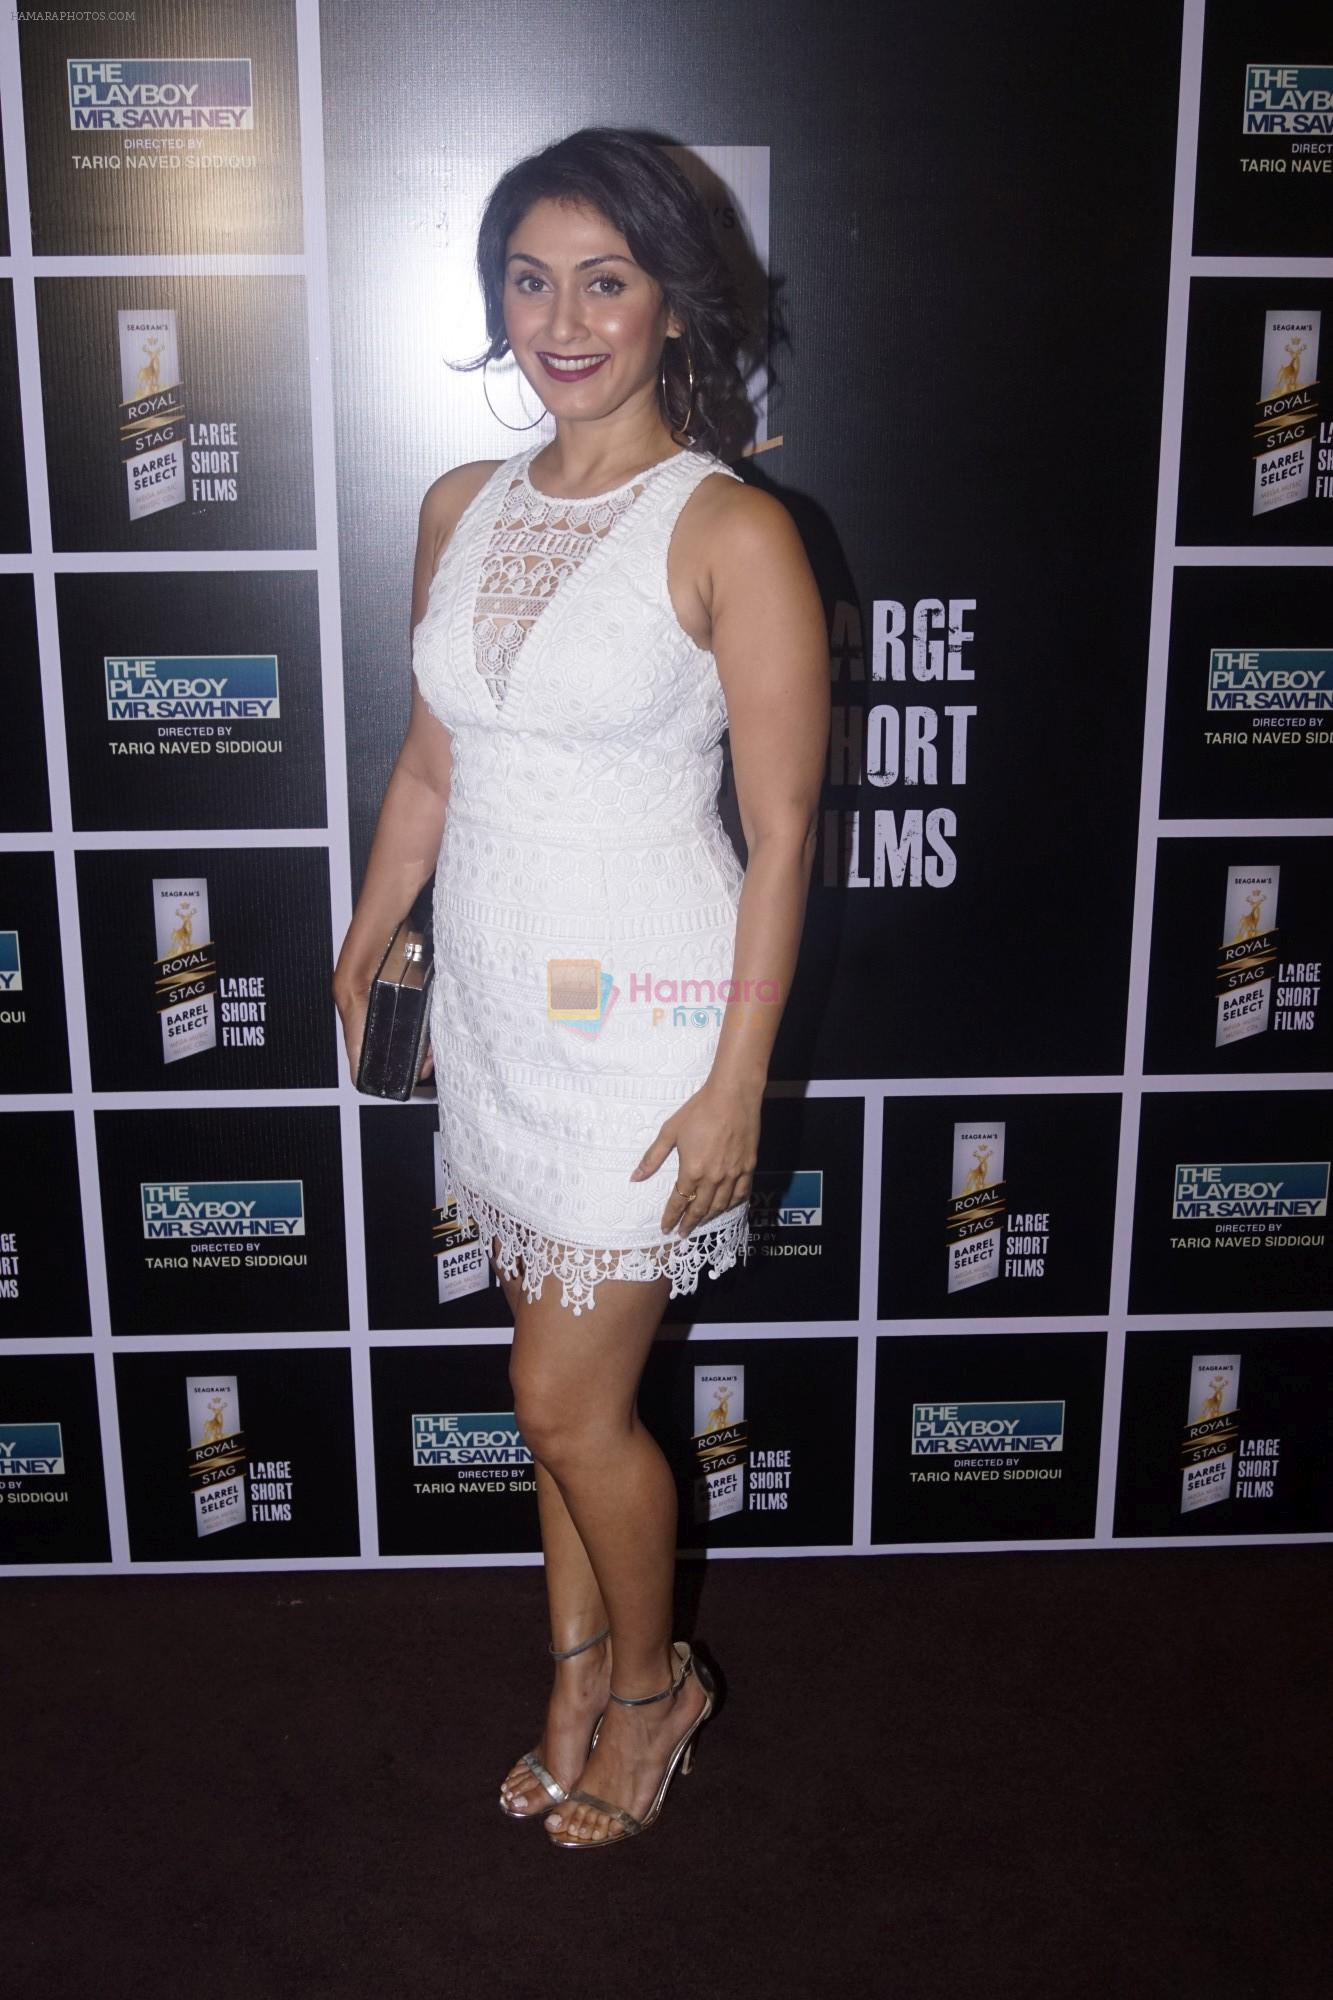 Manjari Phadnis at the Special Screening of Royal Stag Barrel Short Film The Playboy Mr.Sawhney on 24th Oct 2018